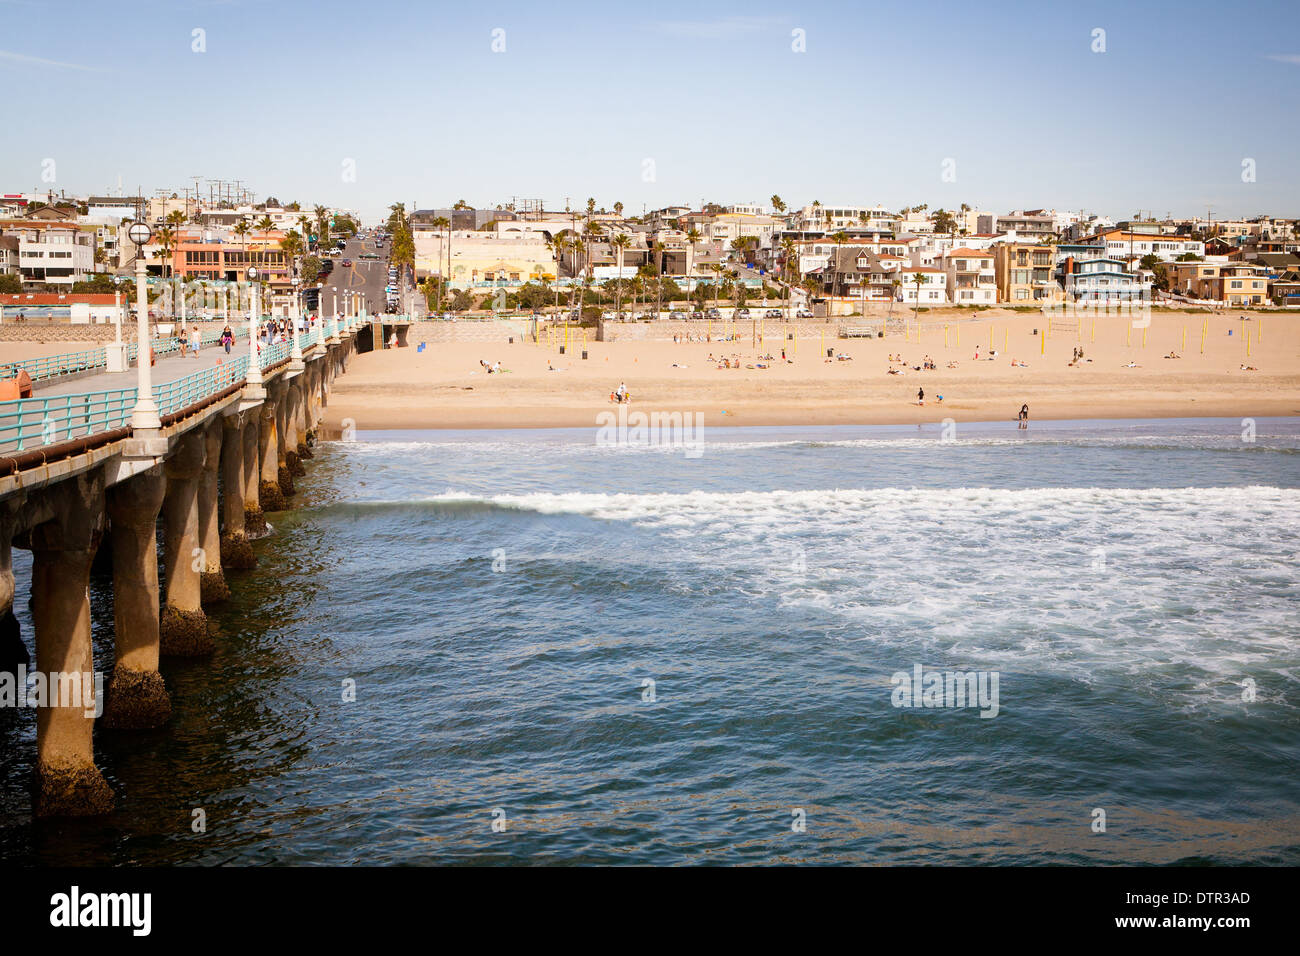 Los Angeles, USA - March 10 - Manhattan Beach and pier on a warm sunny day on March 10th 2011. - Stock Image